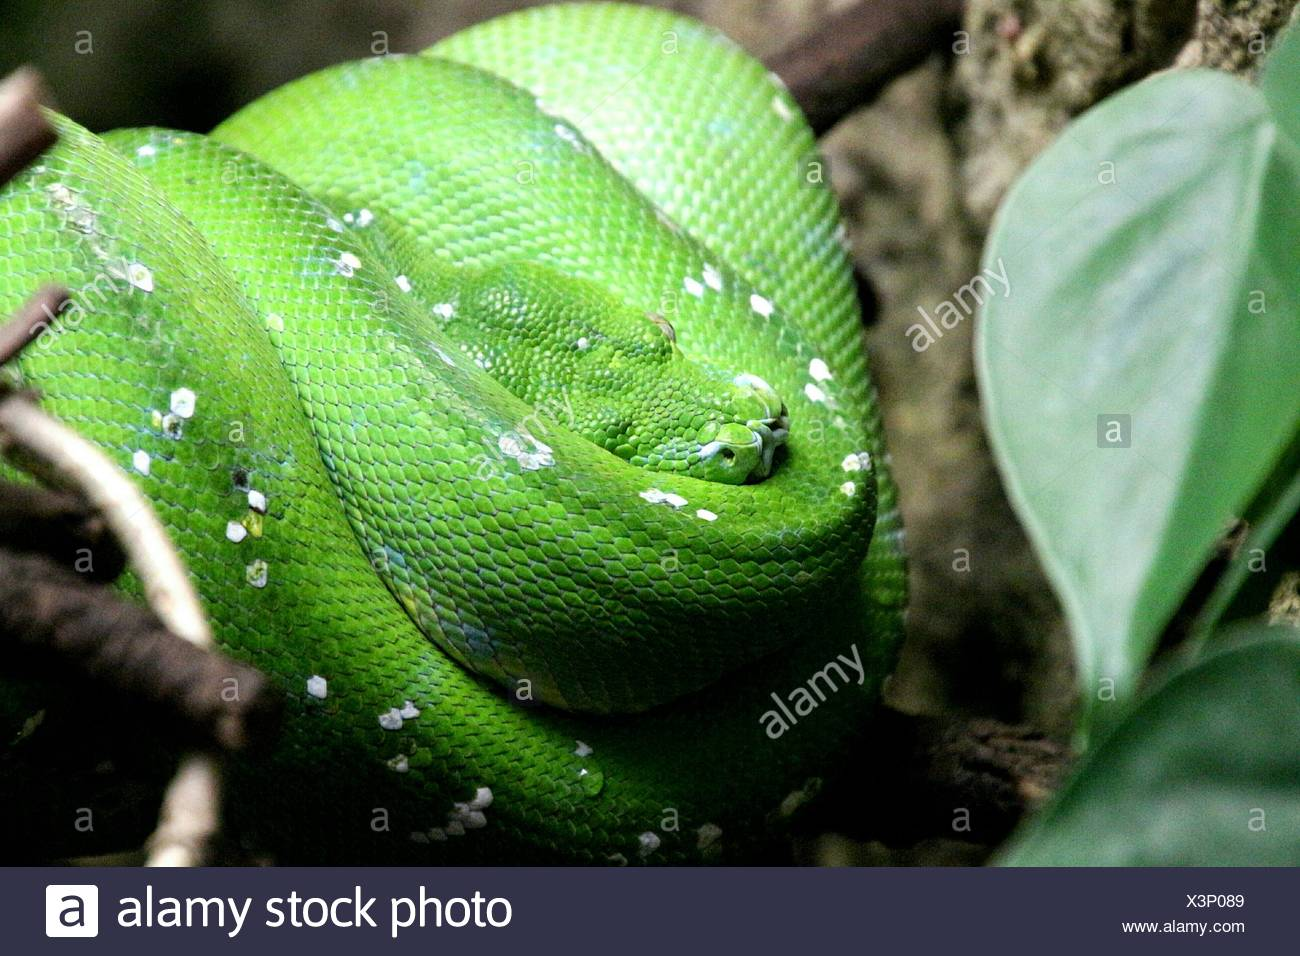 Close-Up Of Green Snake On Branch Stock Photo